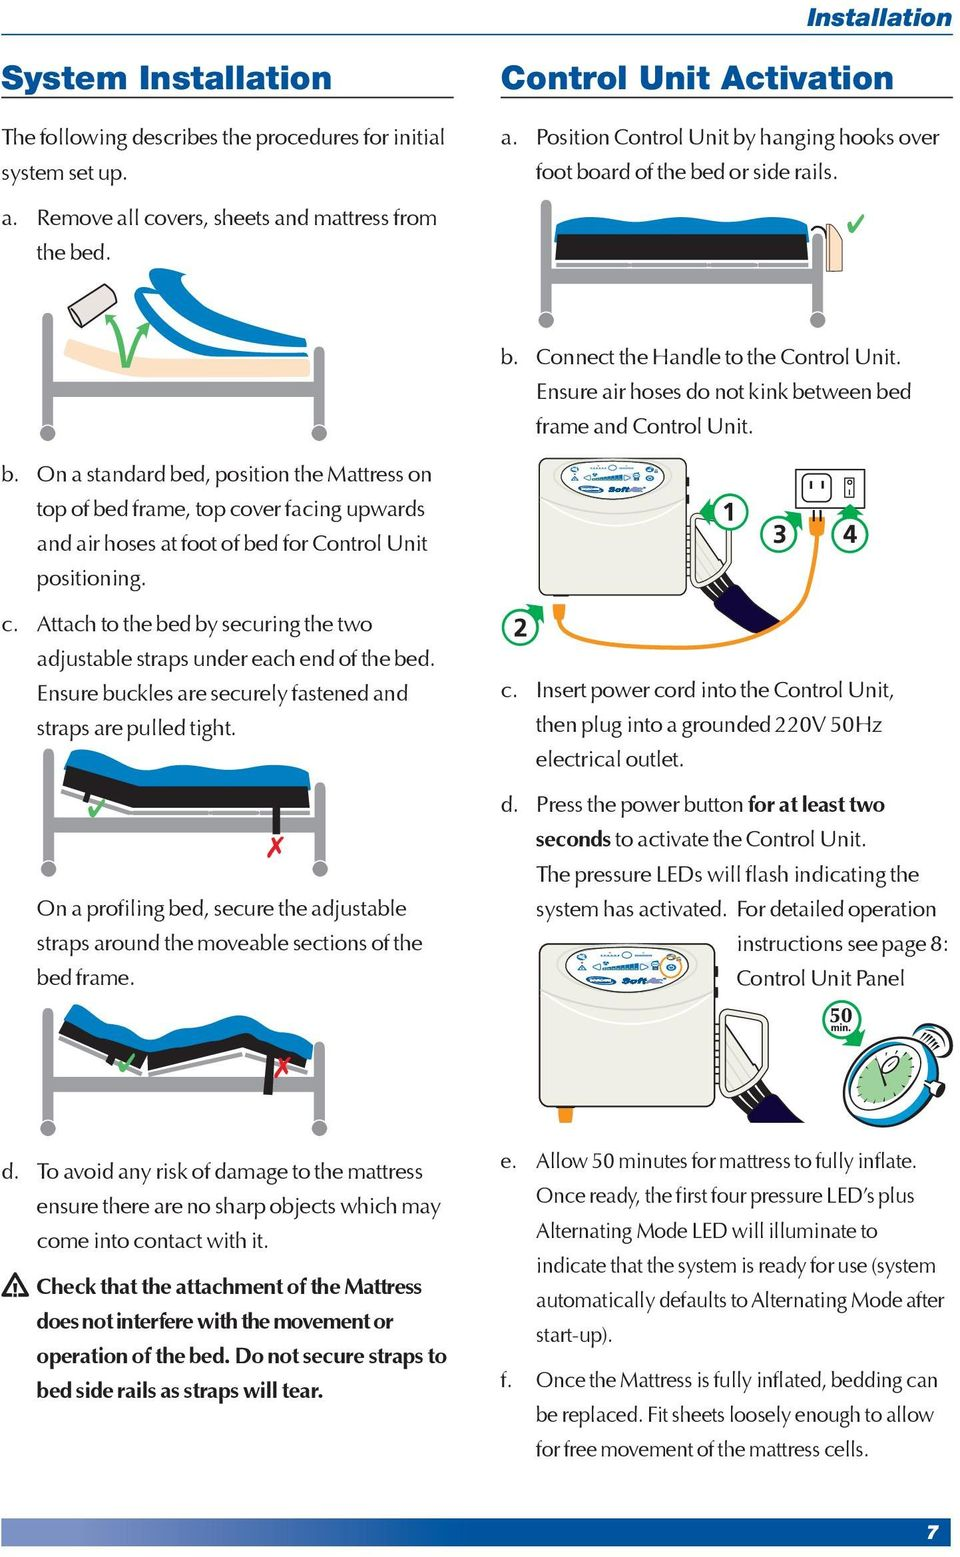 Ensure air hoses do not kink between bed frame and Control Unit. b. On a standard bed, position the Mattress on top of bed frame, top cover facing upwards and air hoses at foot of bed for Control Unit positioning.